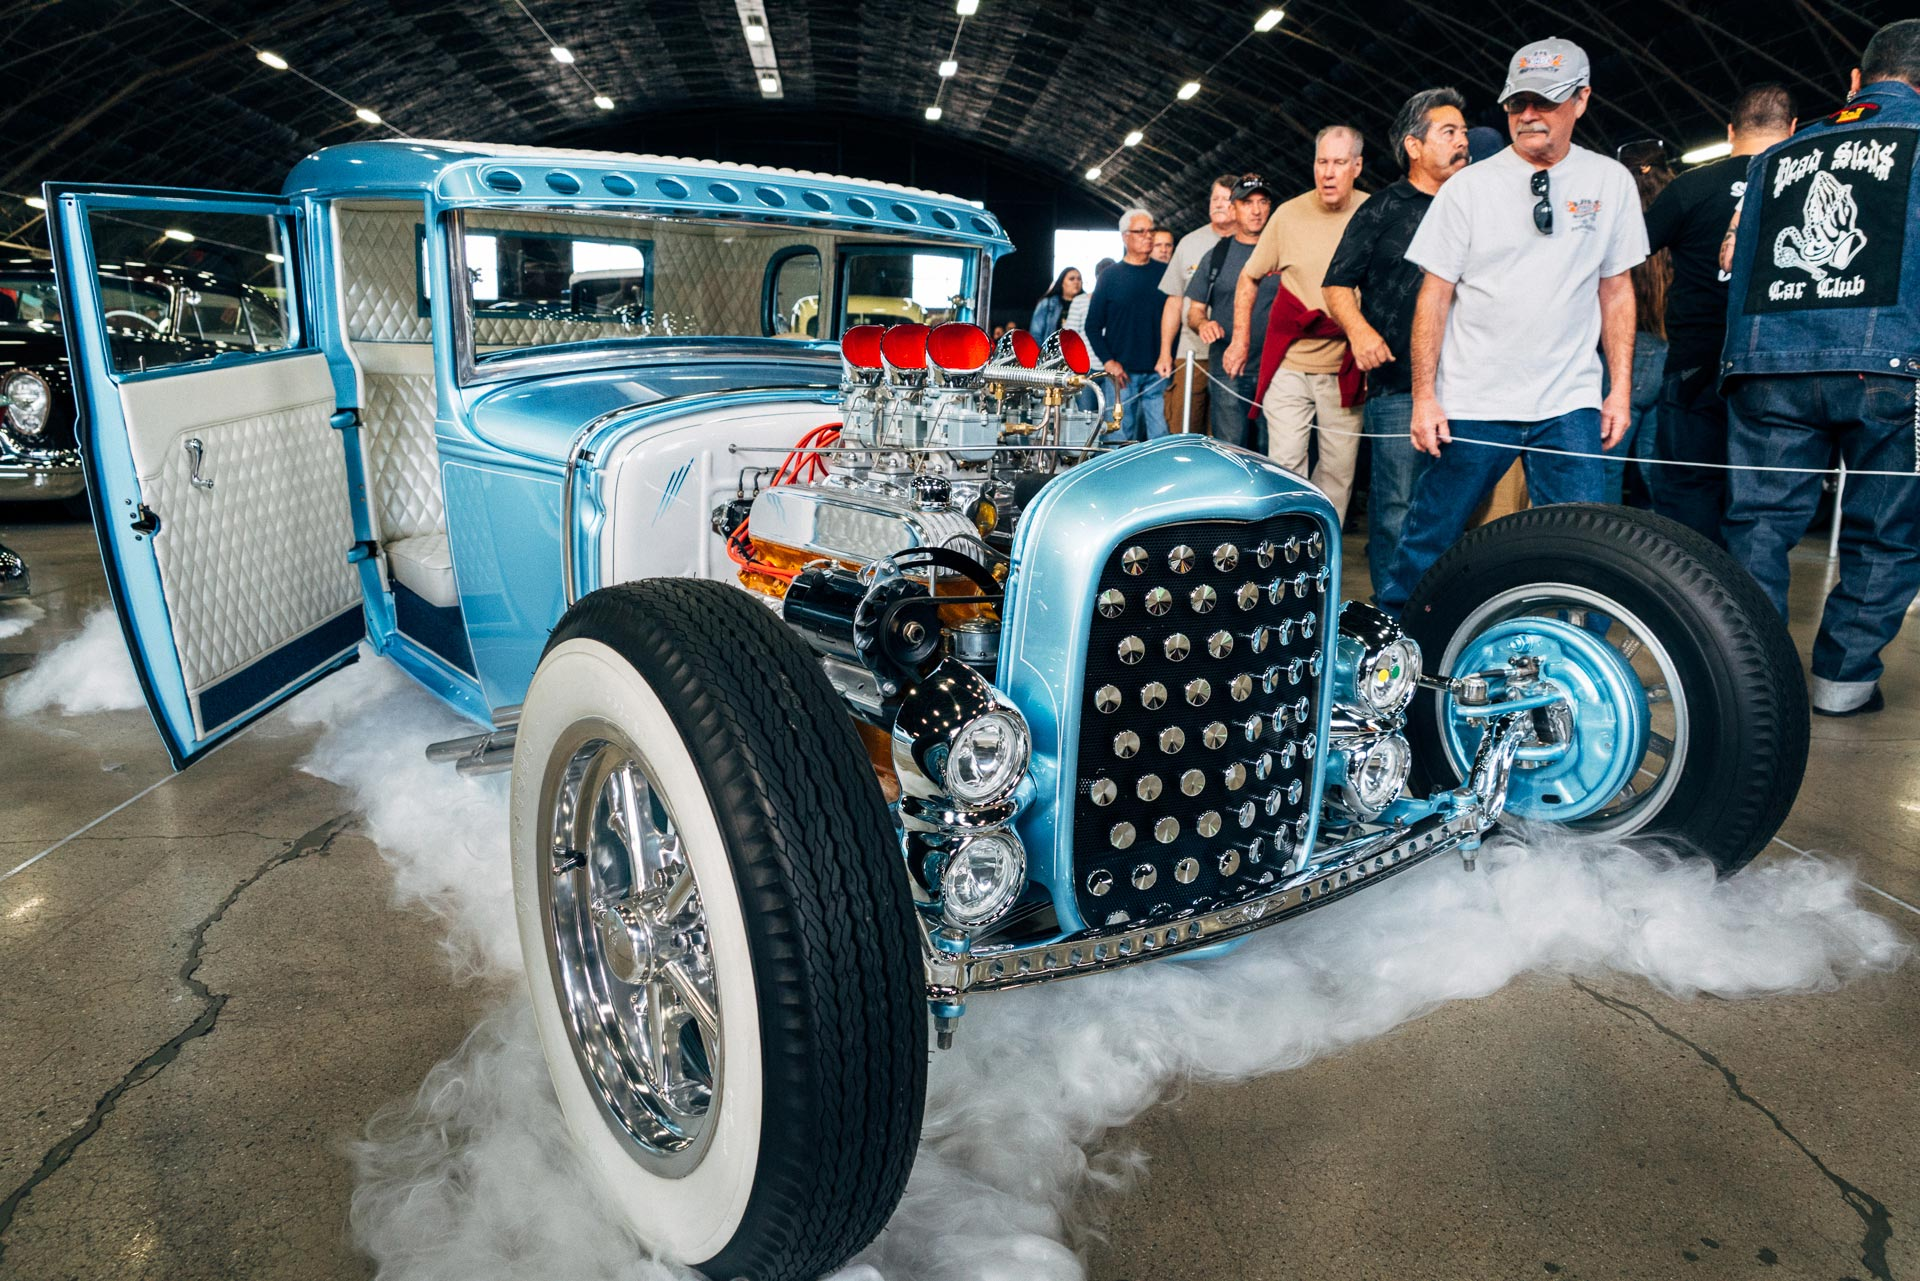 Bias Ply tires on a hot rod at the 2019 Grand National Roadster Show